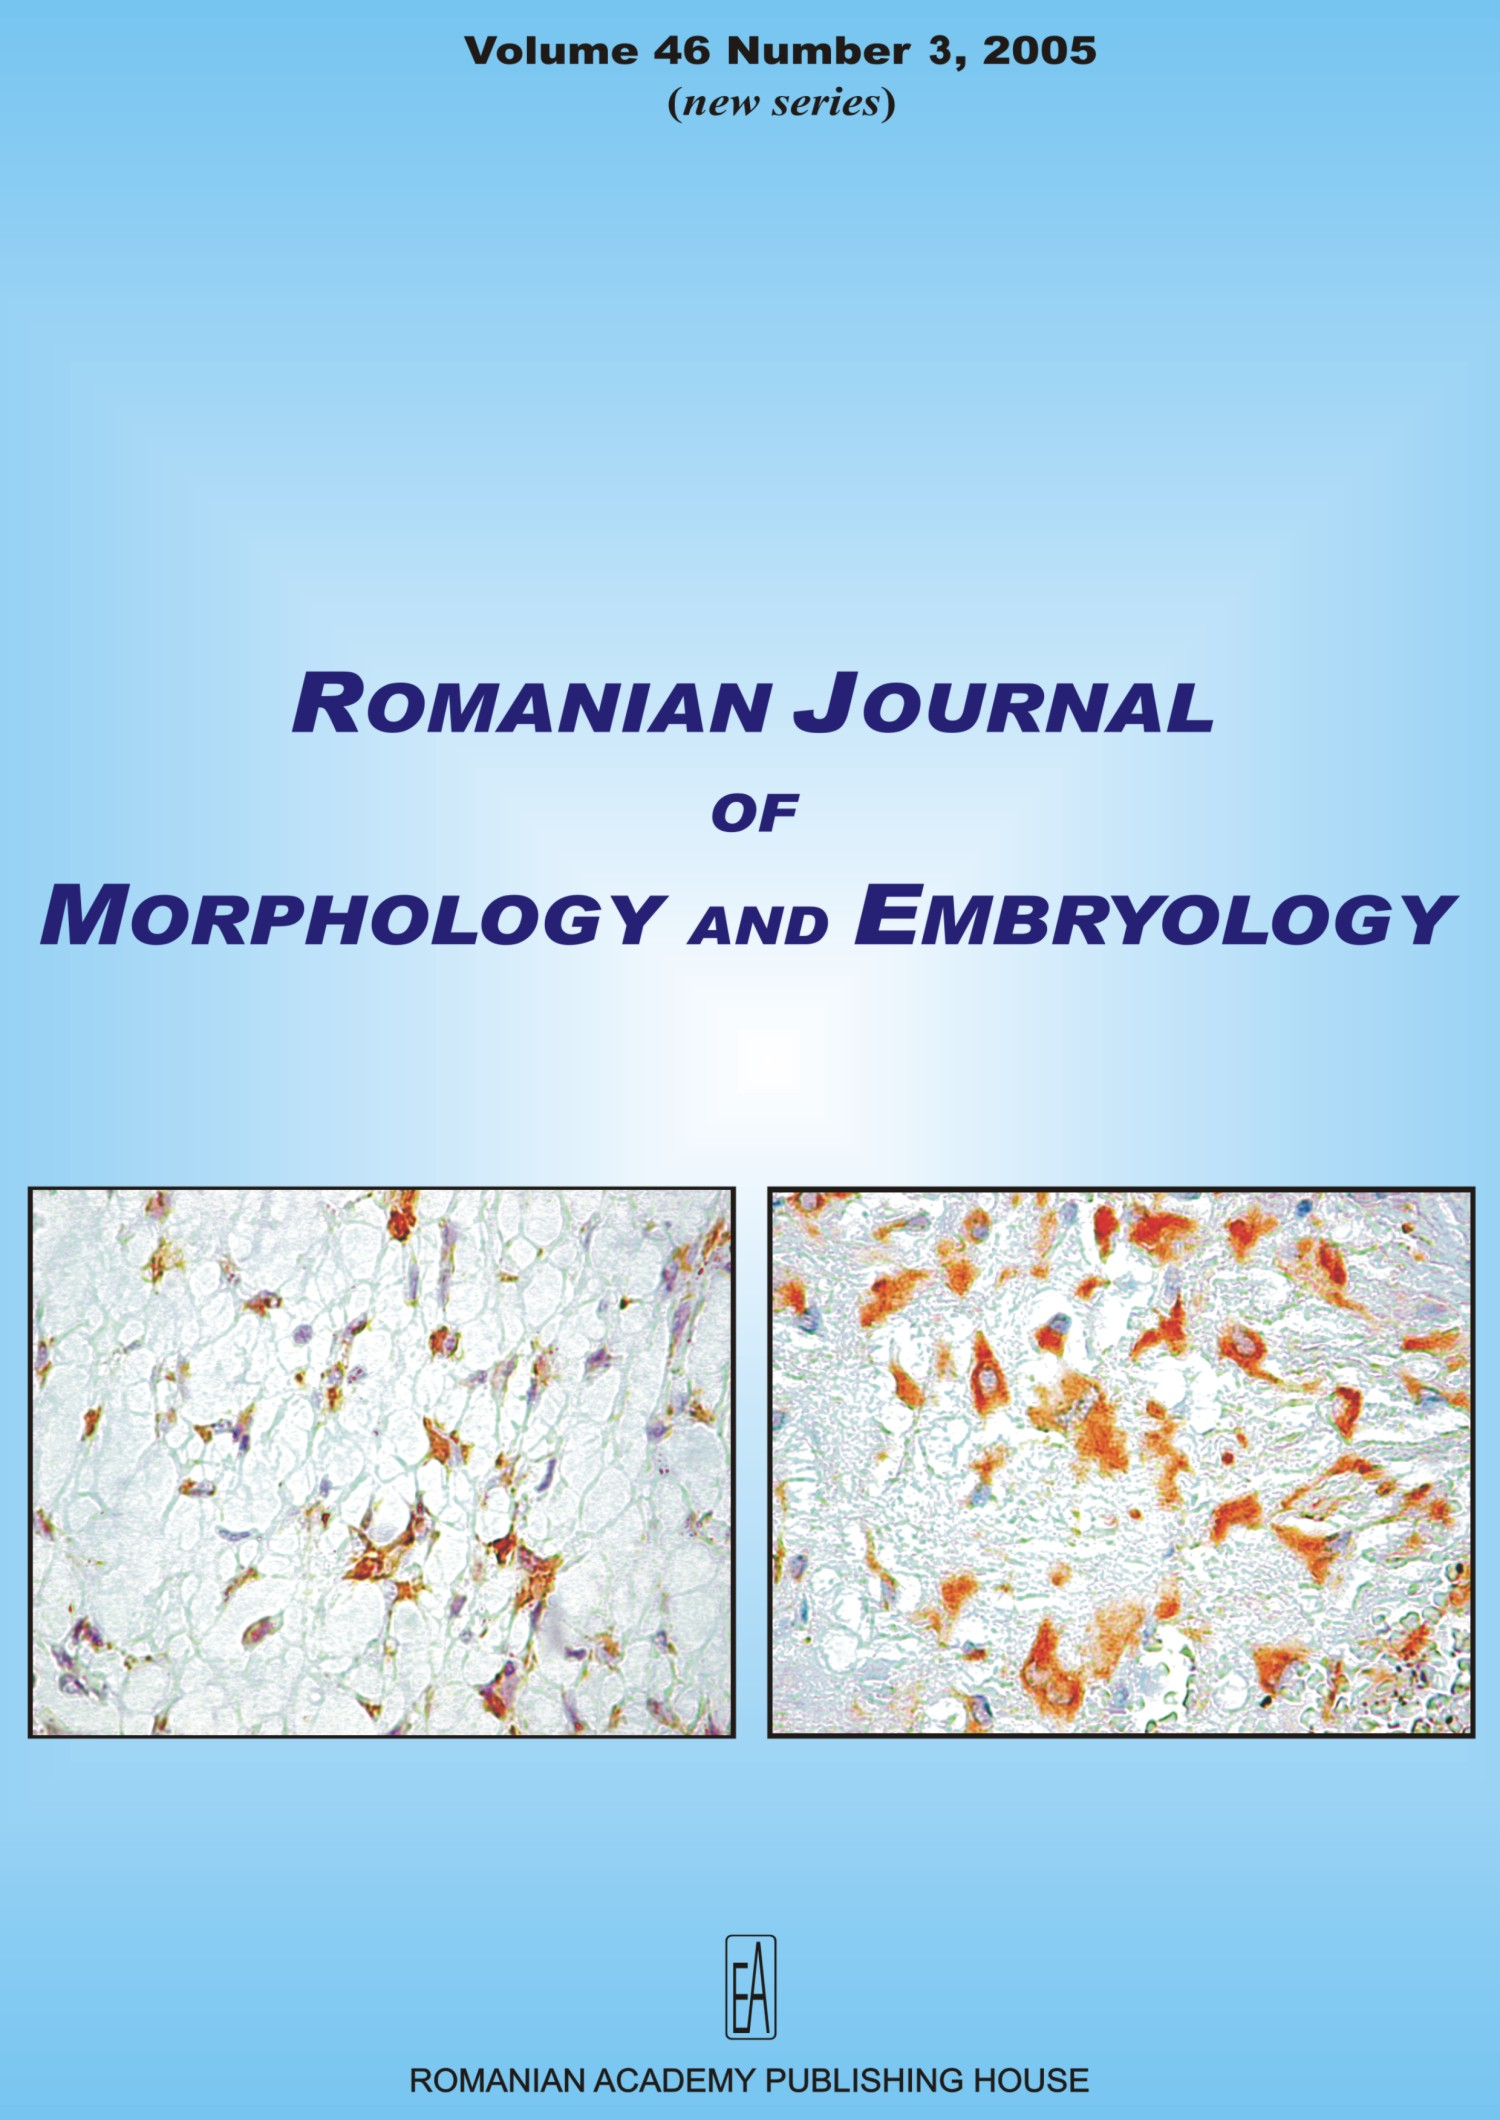 Romanian Journal of Morphology and Embryology, vol. 46 no. 3, 2005